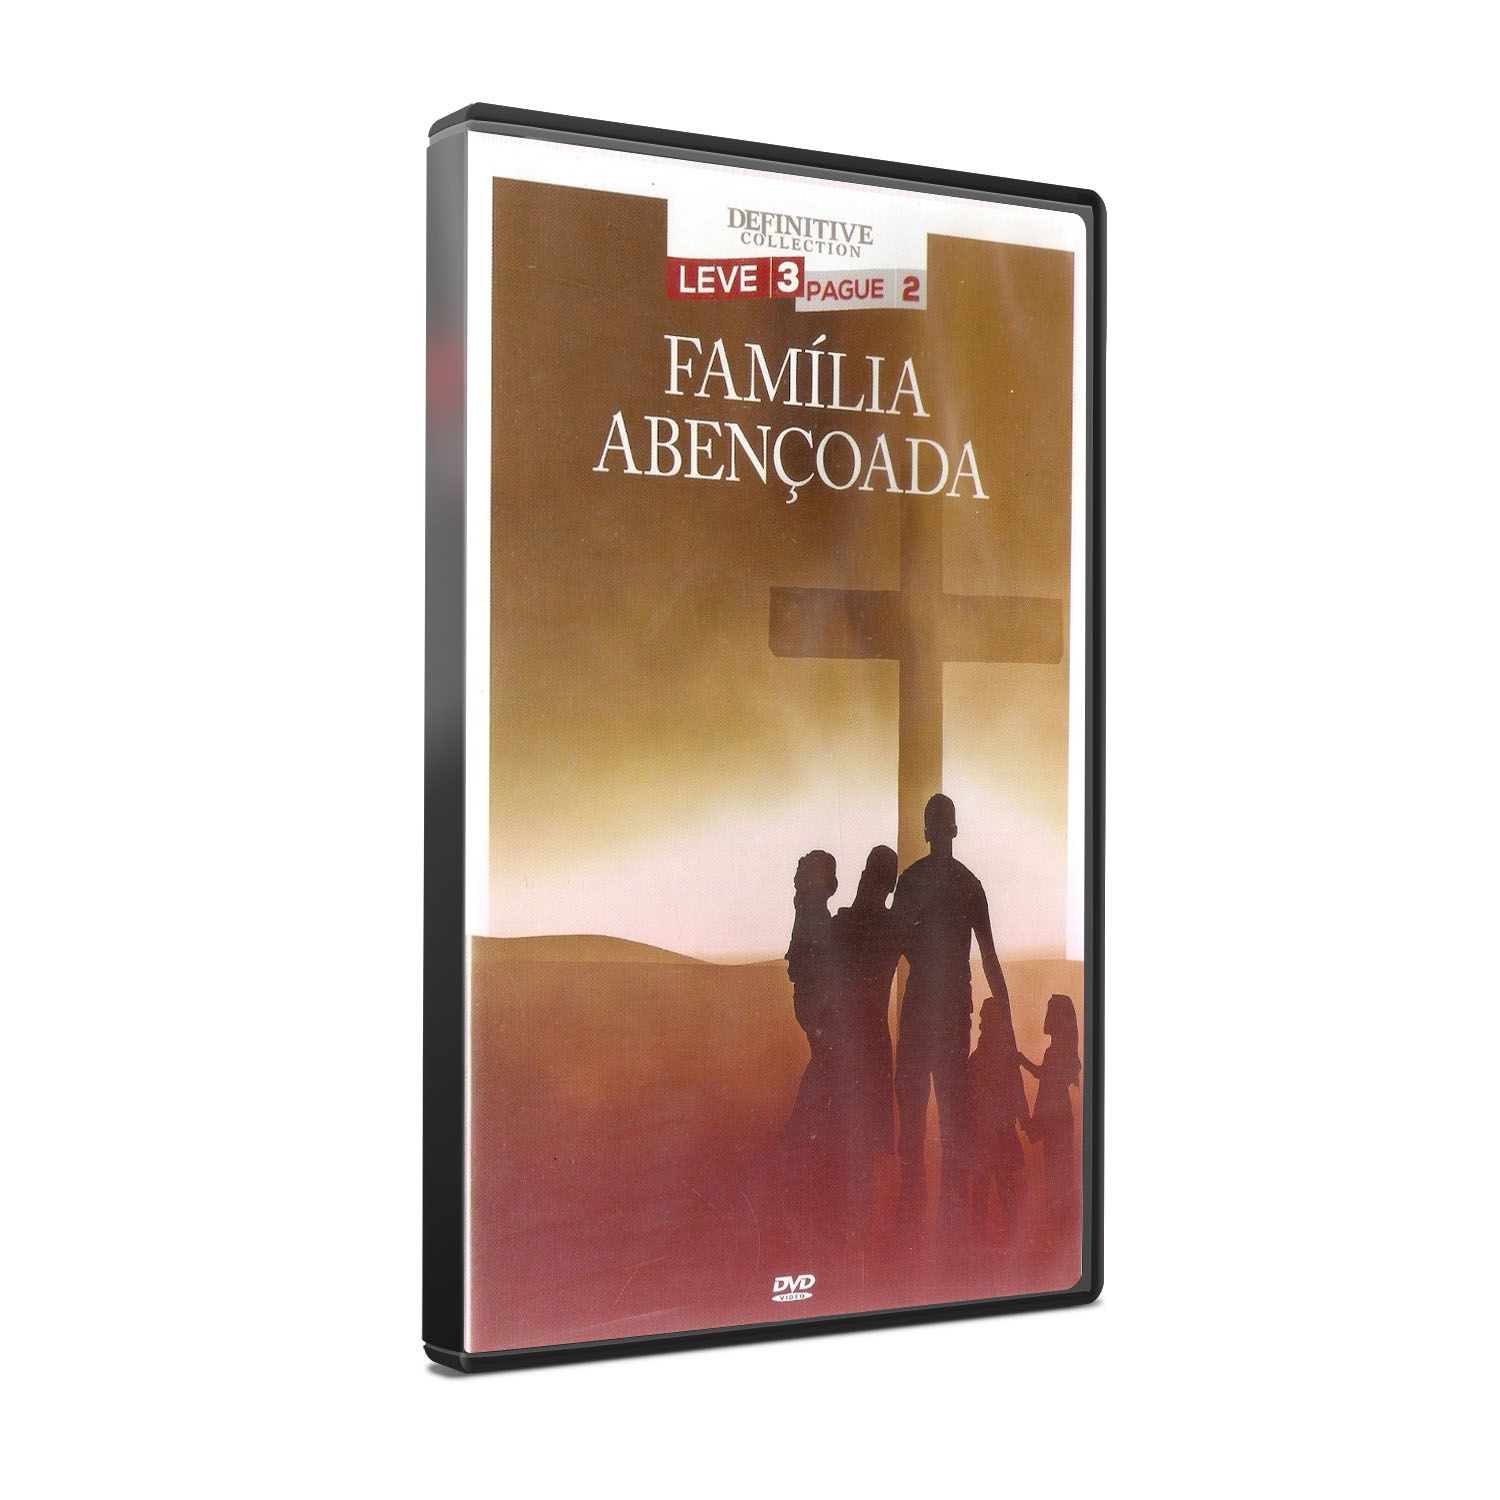 DVD FAMILIA ABENÇOADA - DEFINITIVE COLLECTION